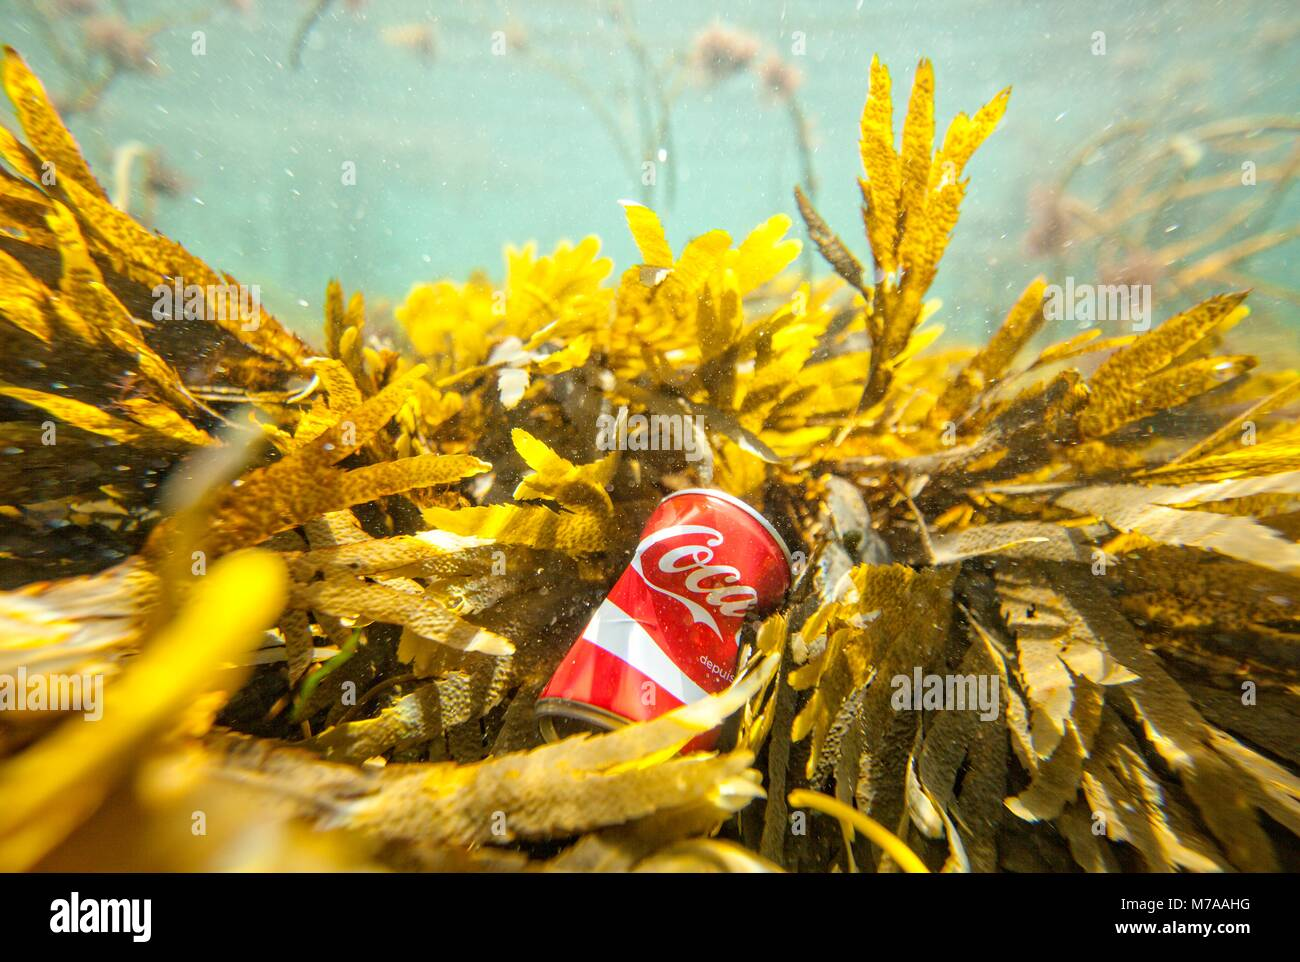 Trash floating on the Brittany shore line,Le Courégant, France. Water pollution is largely caused by human - Stock Image